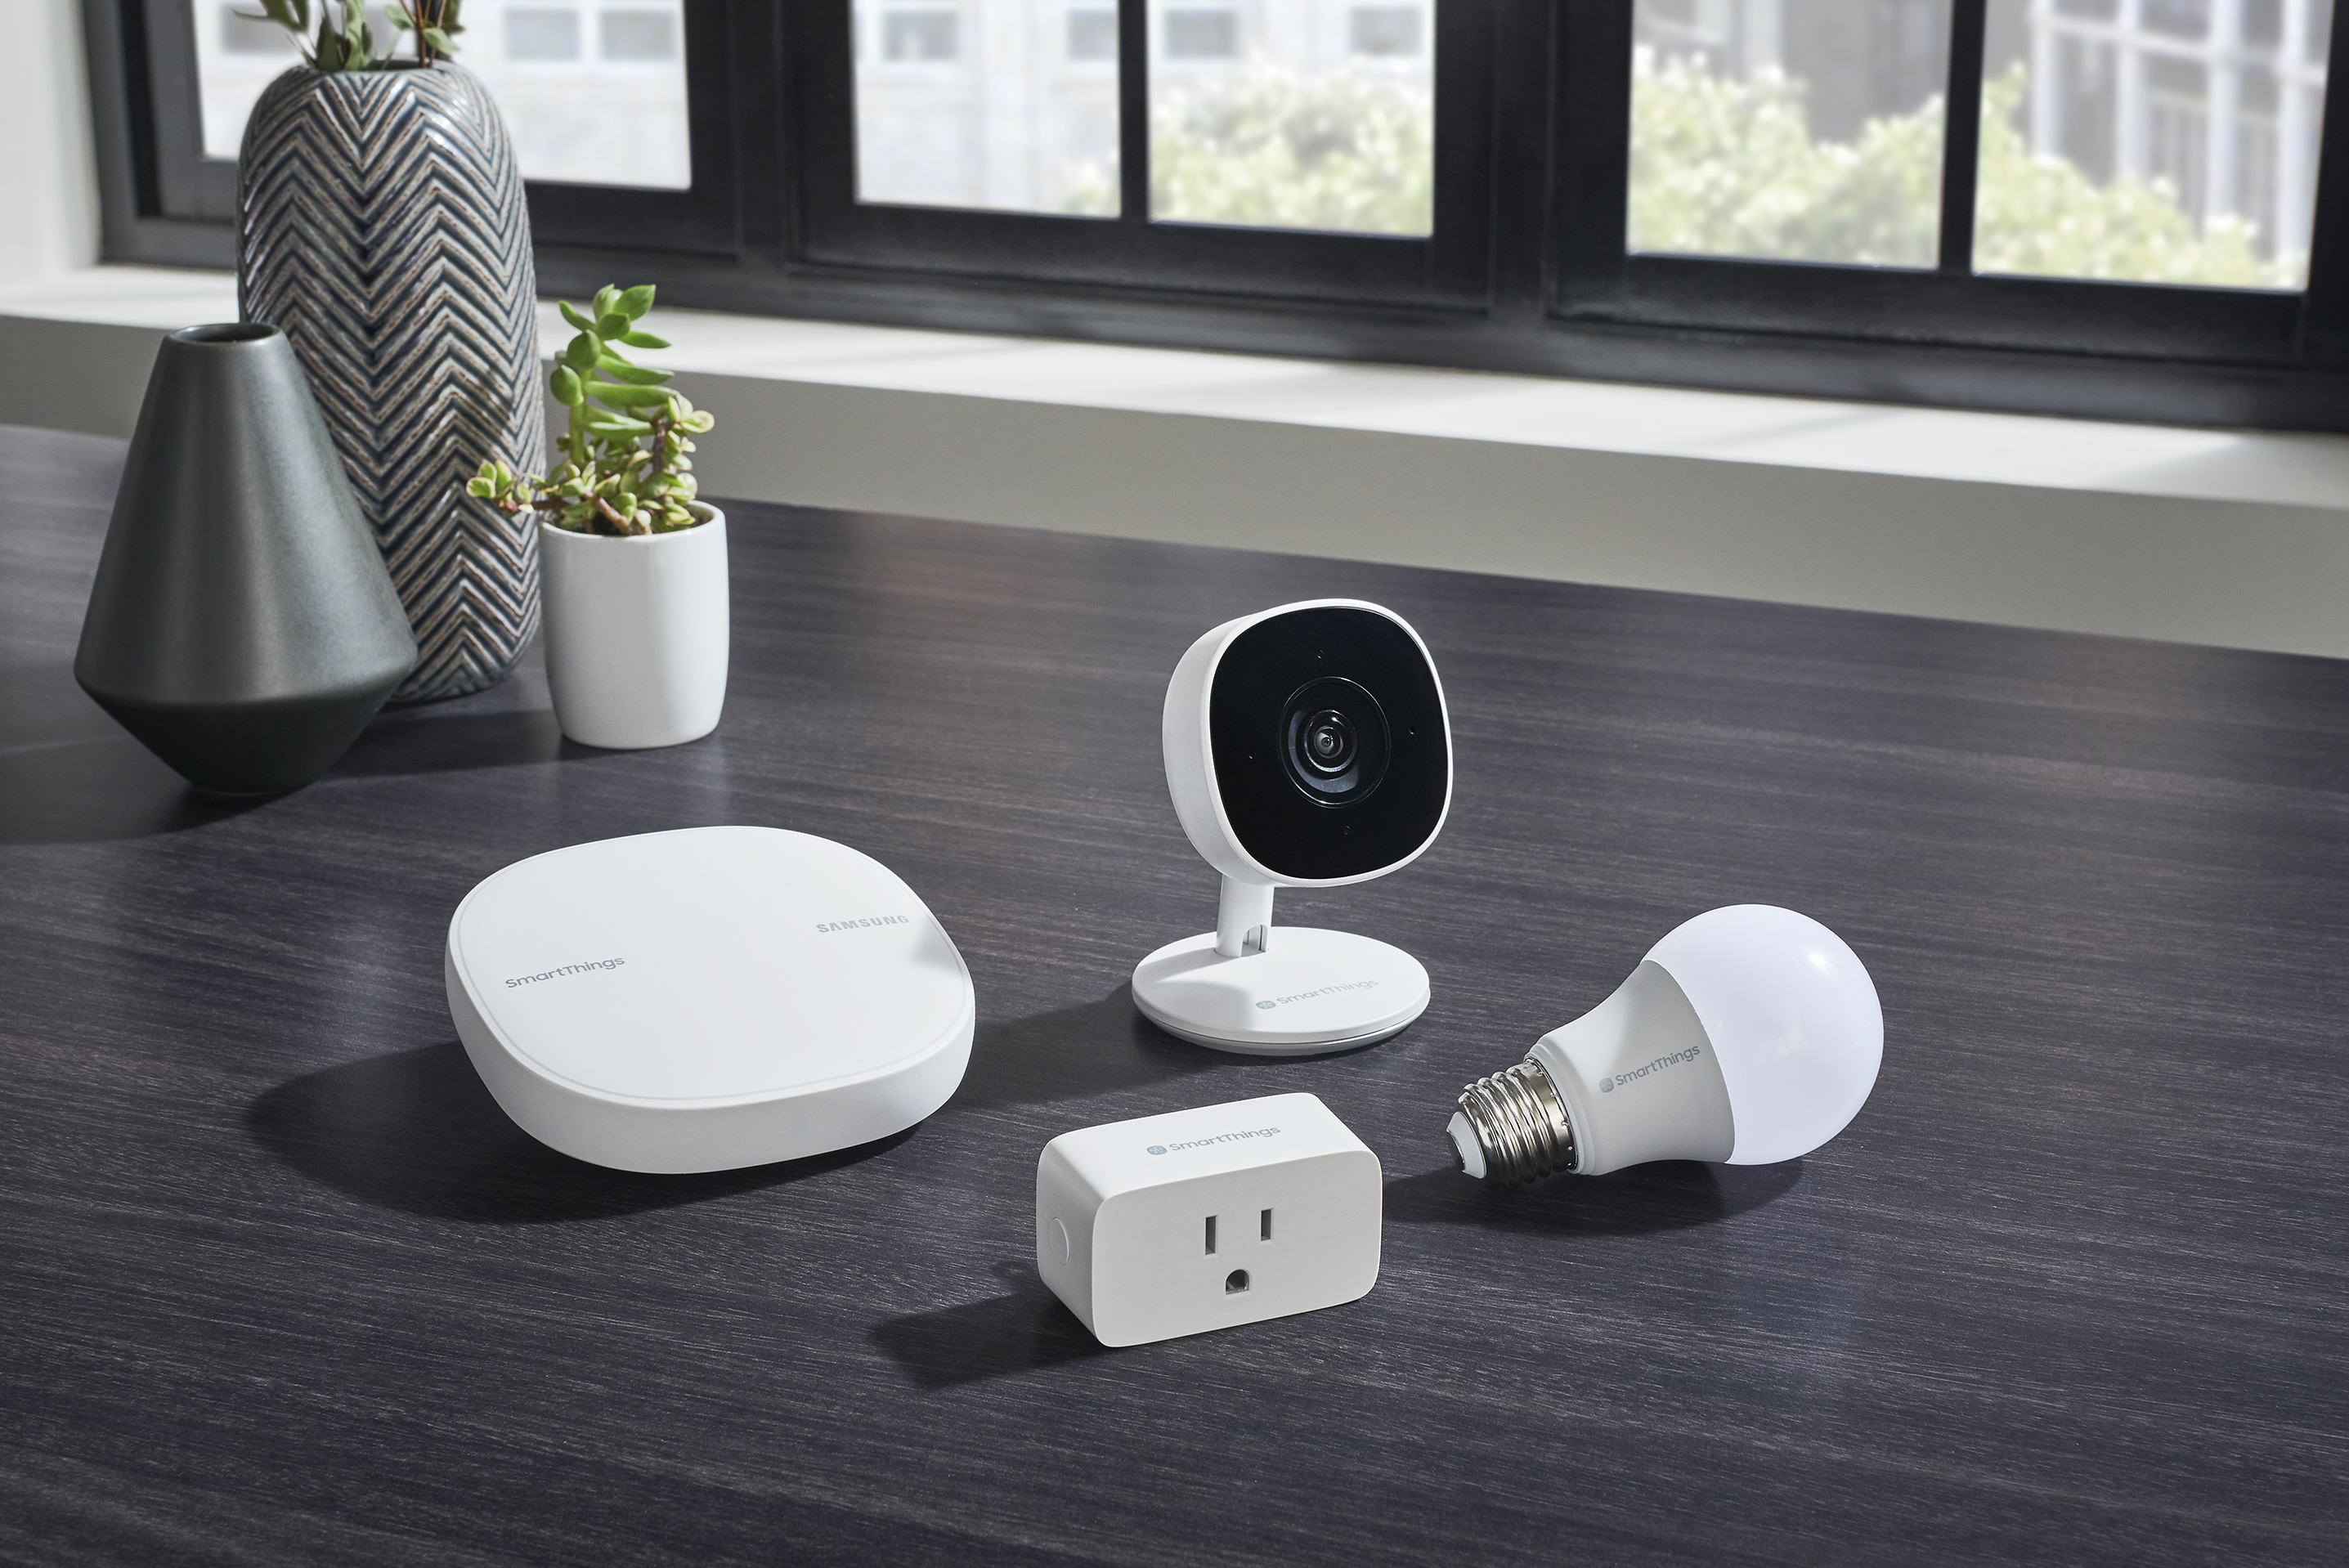 Samsung expands SmartThings ecosystem with affordable smart camera, plug, and bulb